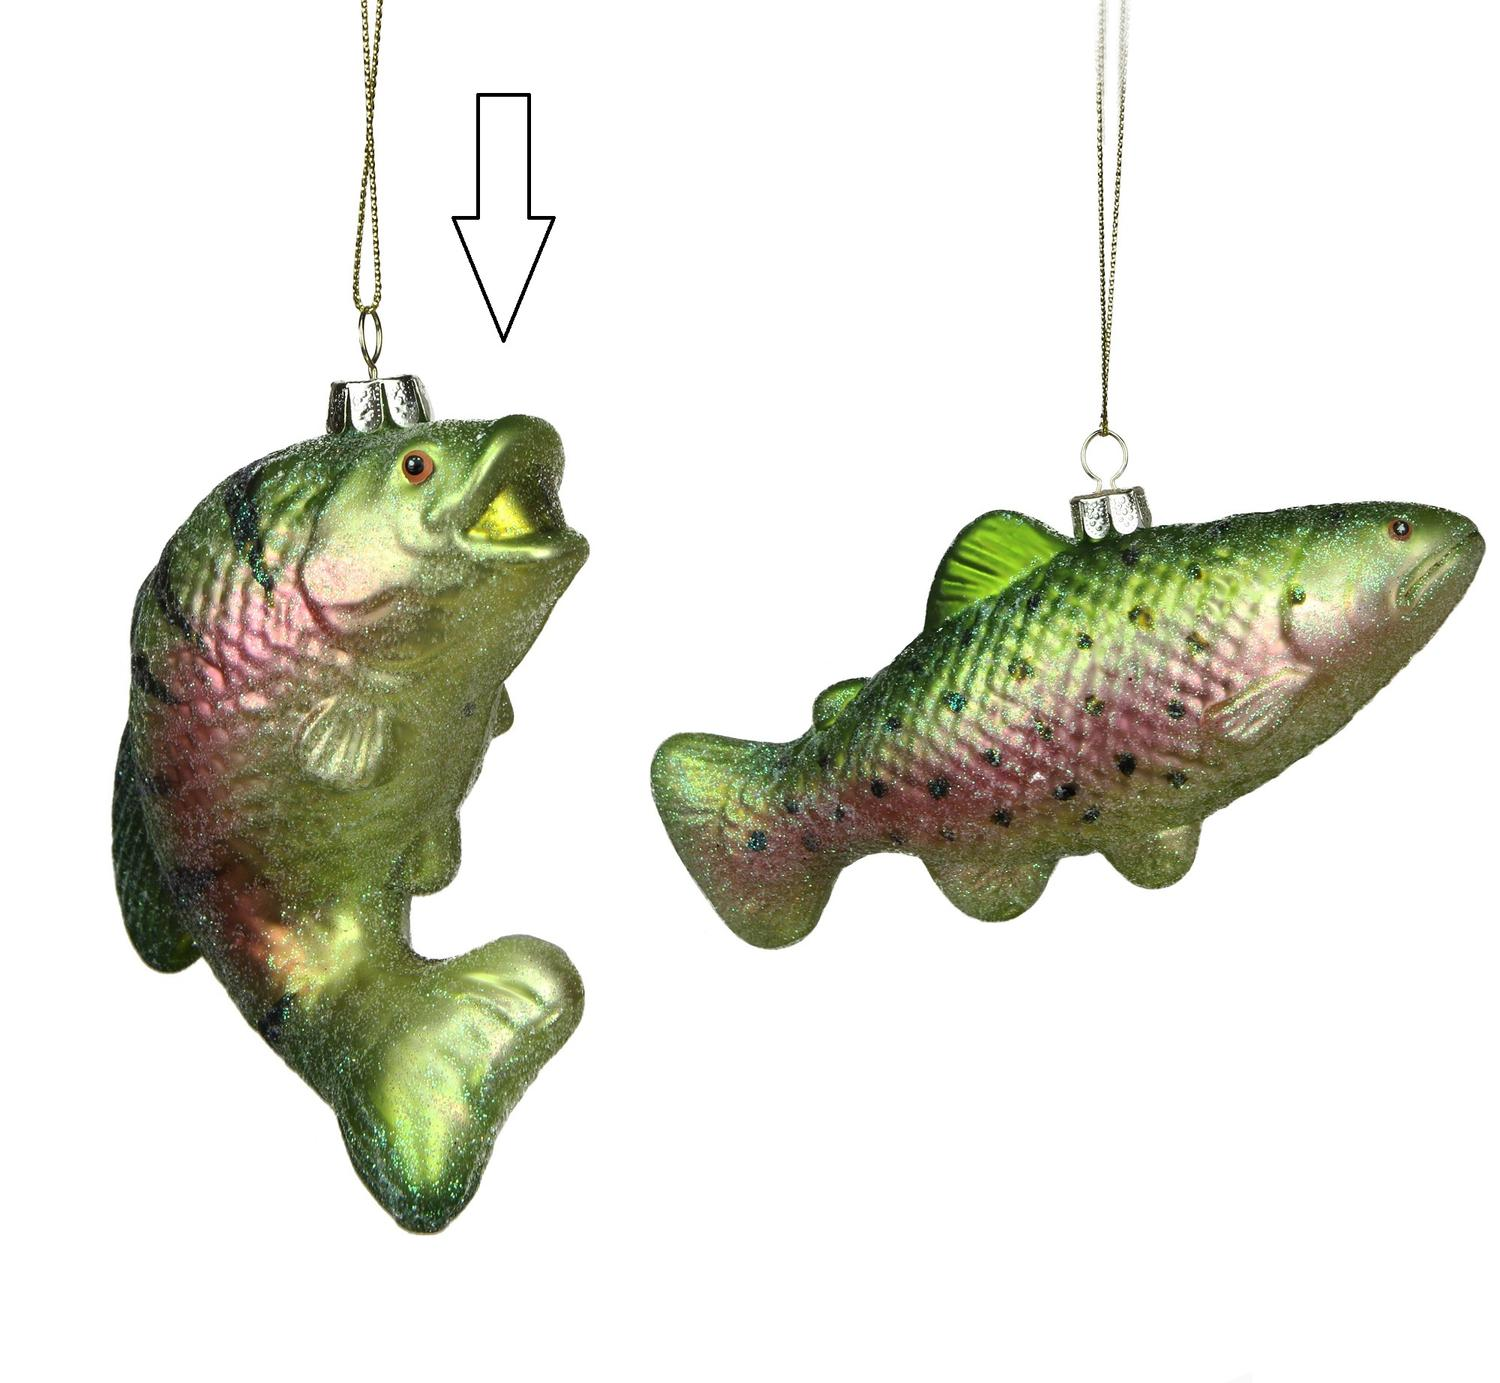 ''4'''' Under the Sea Glittered Metallic Green Stripped Fish Glass Christmas ornament''